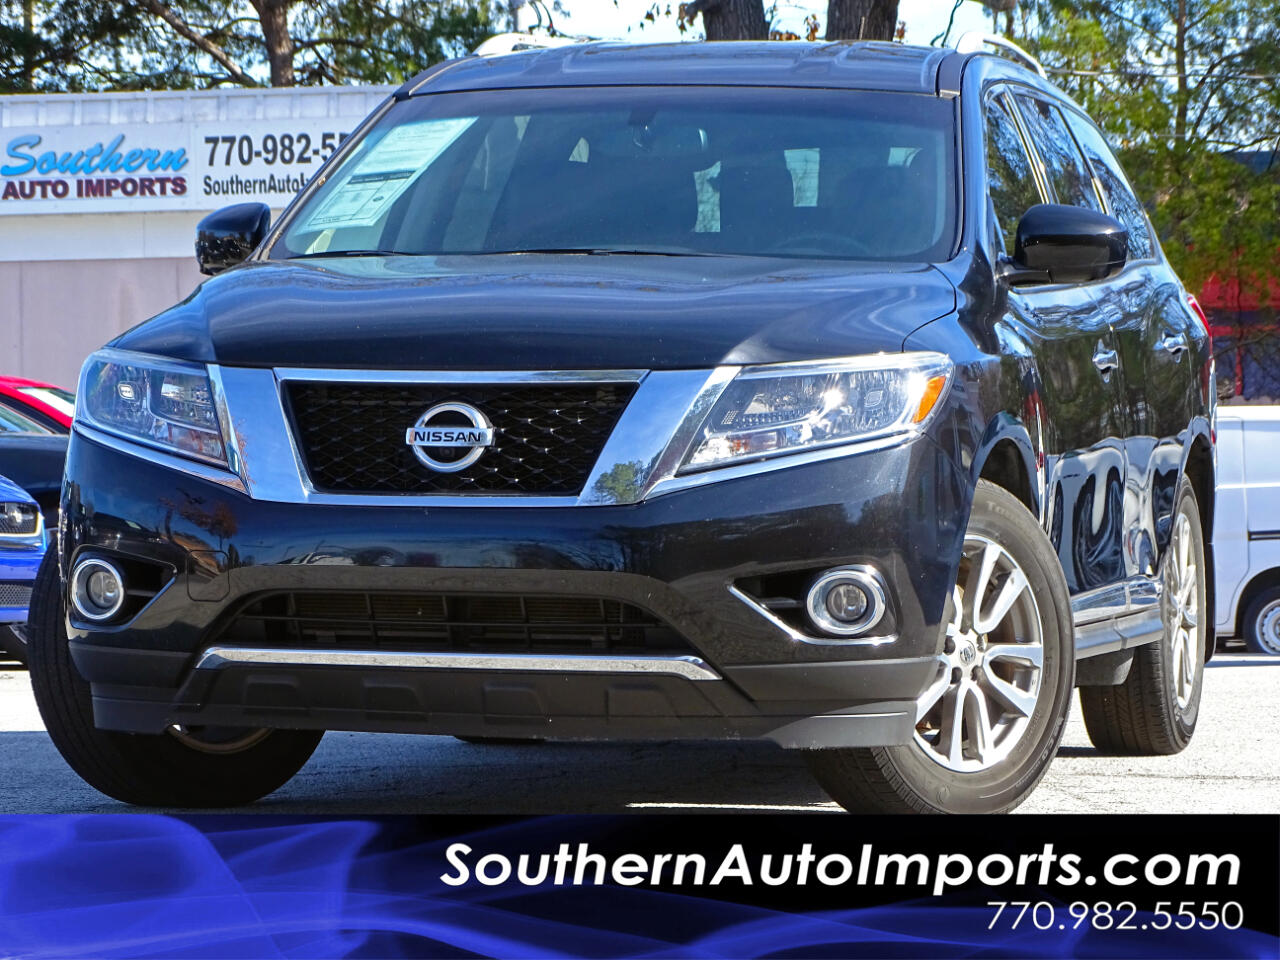 2015 Nissan Pathfinder SL w/Navigation 360 Camera Blind Spot Monitor